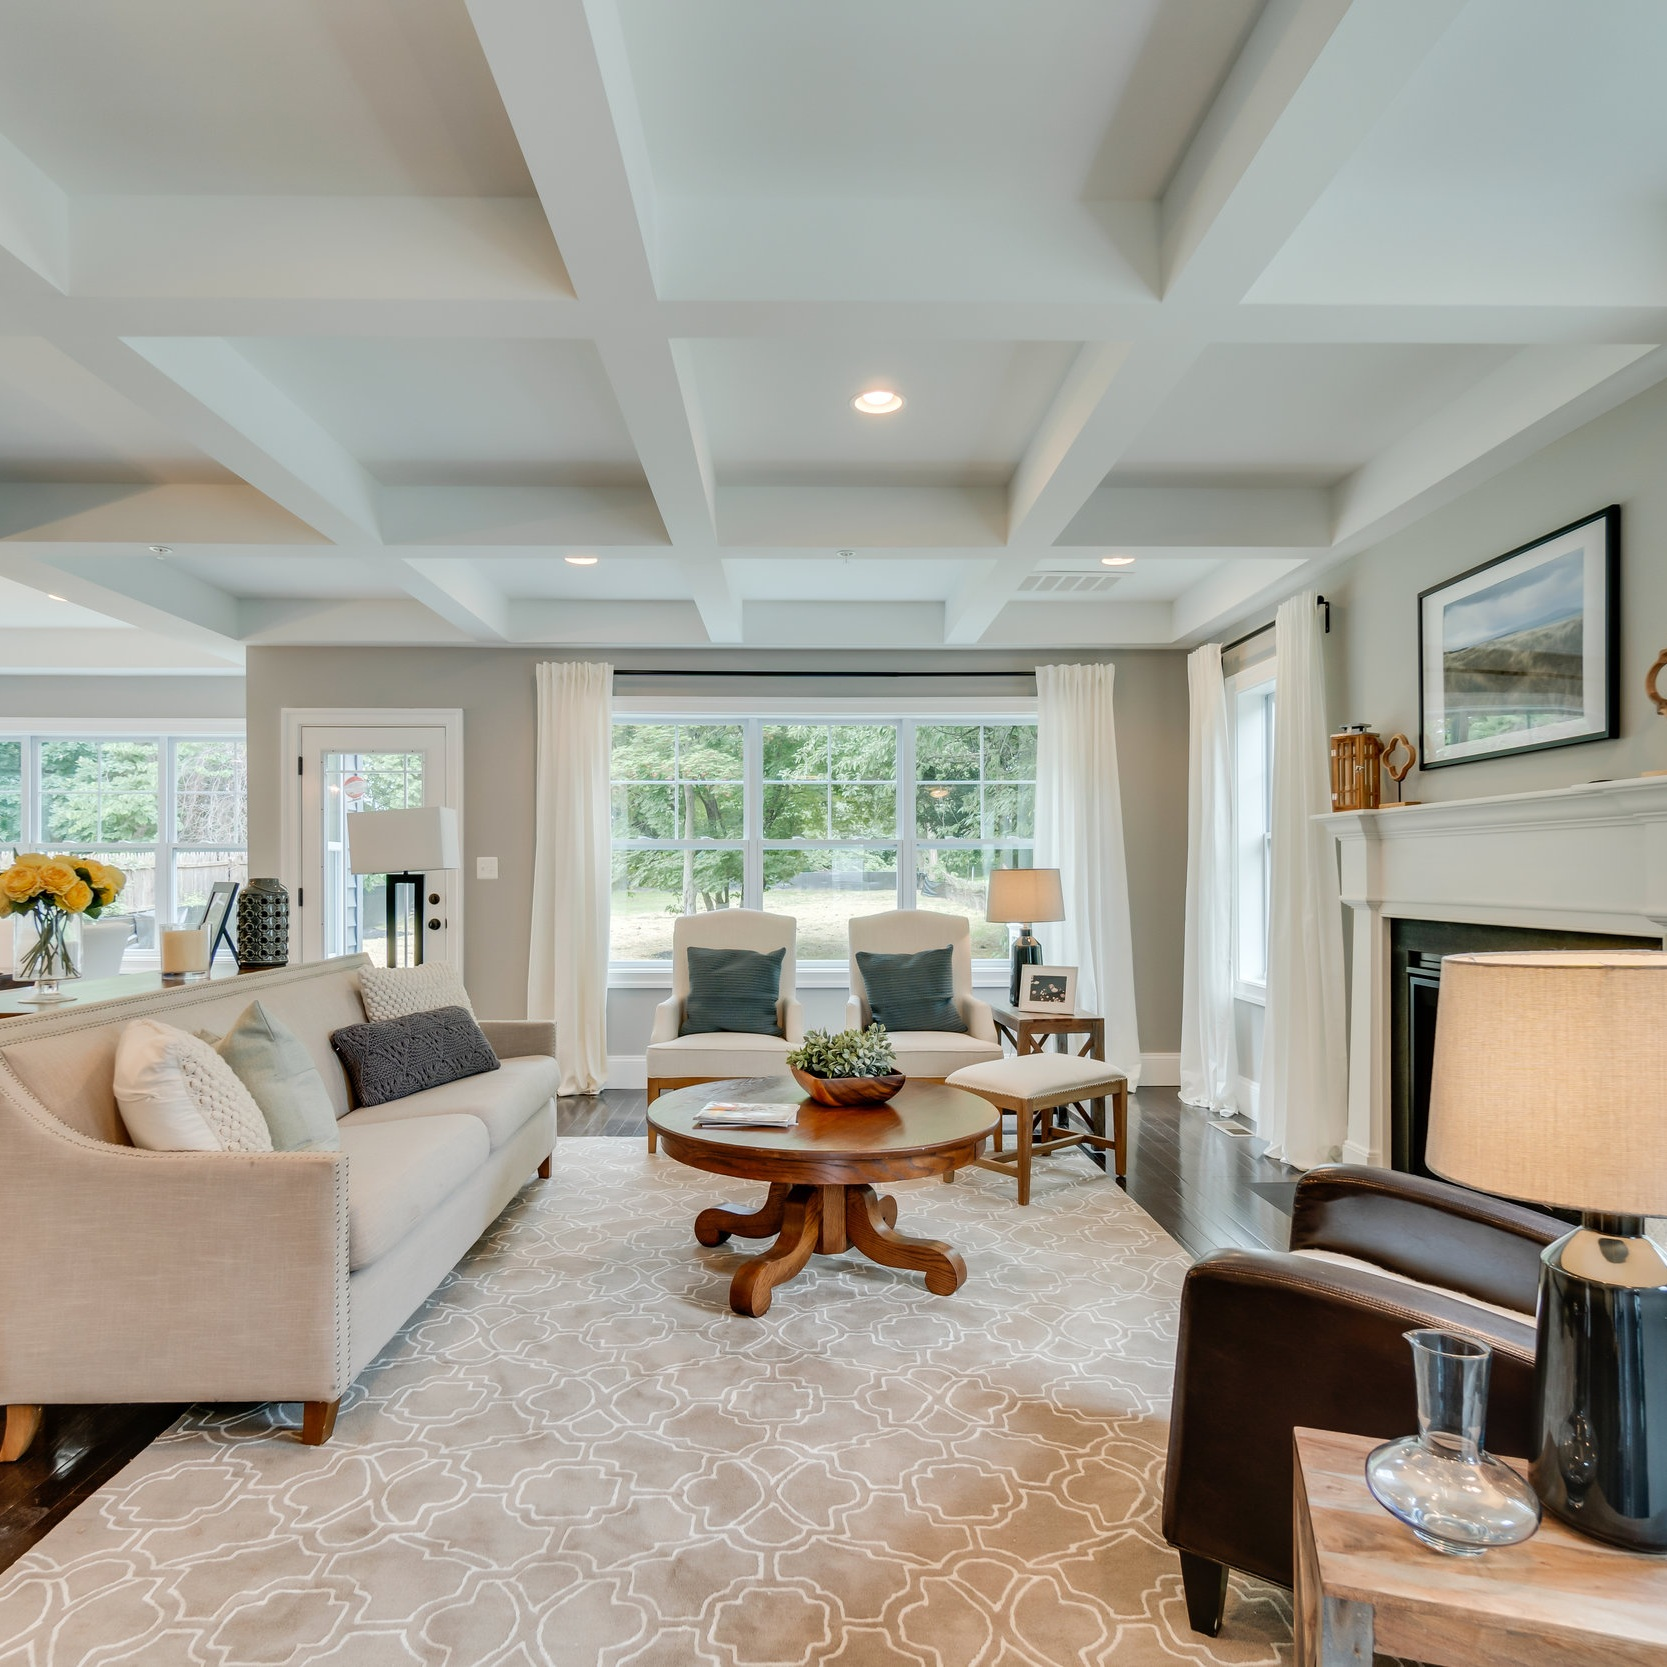 360° Virtual Tour - Bring the home tour to potential buyers. We use HDR images stitched together to give you a full, panoramic tour of your entire property for use on Google Maps and social media.